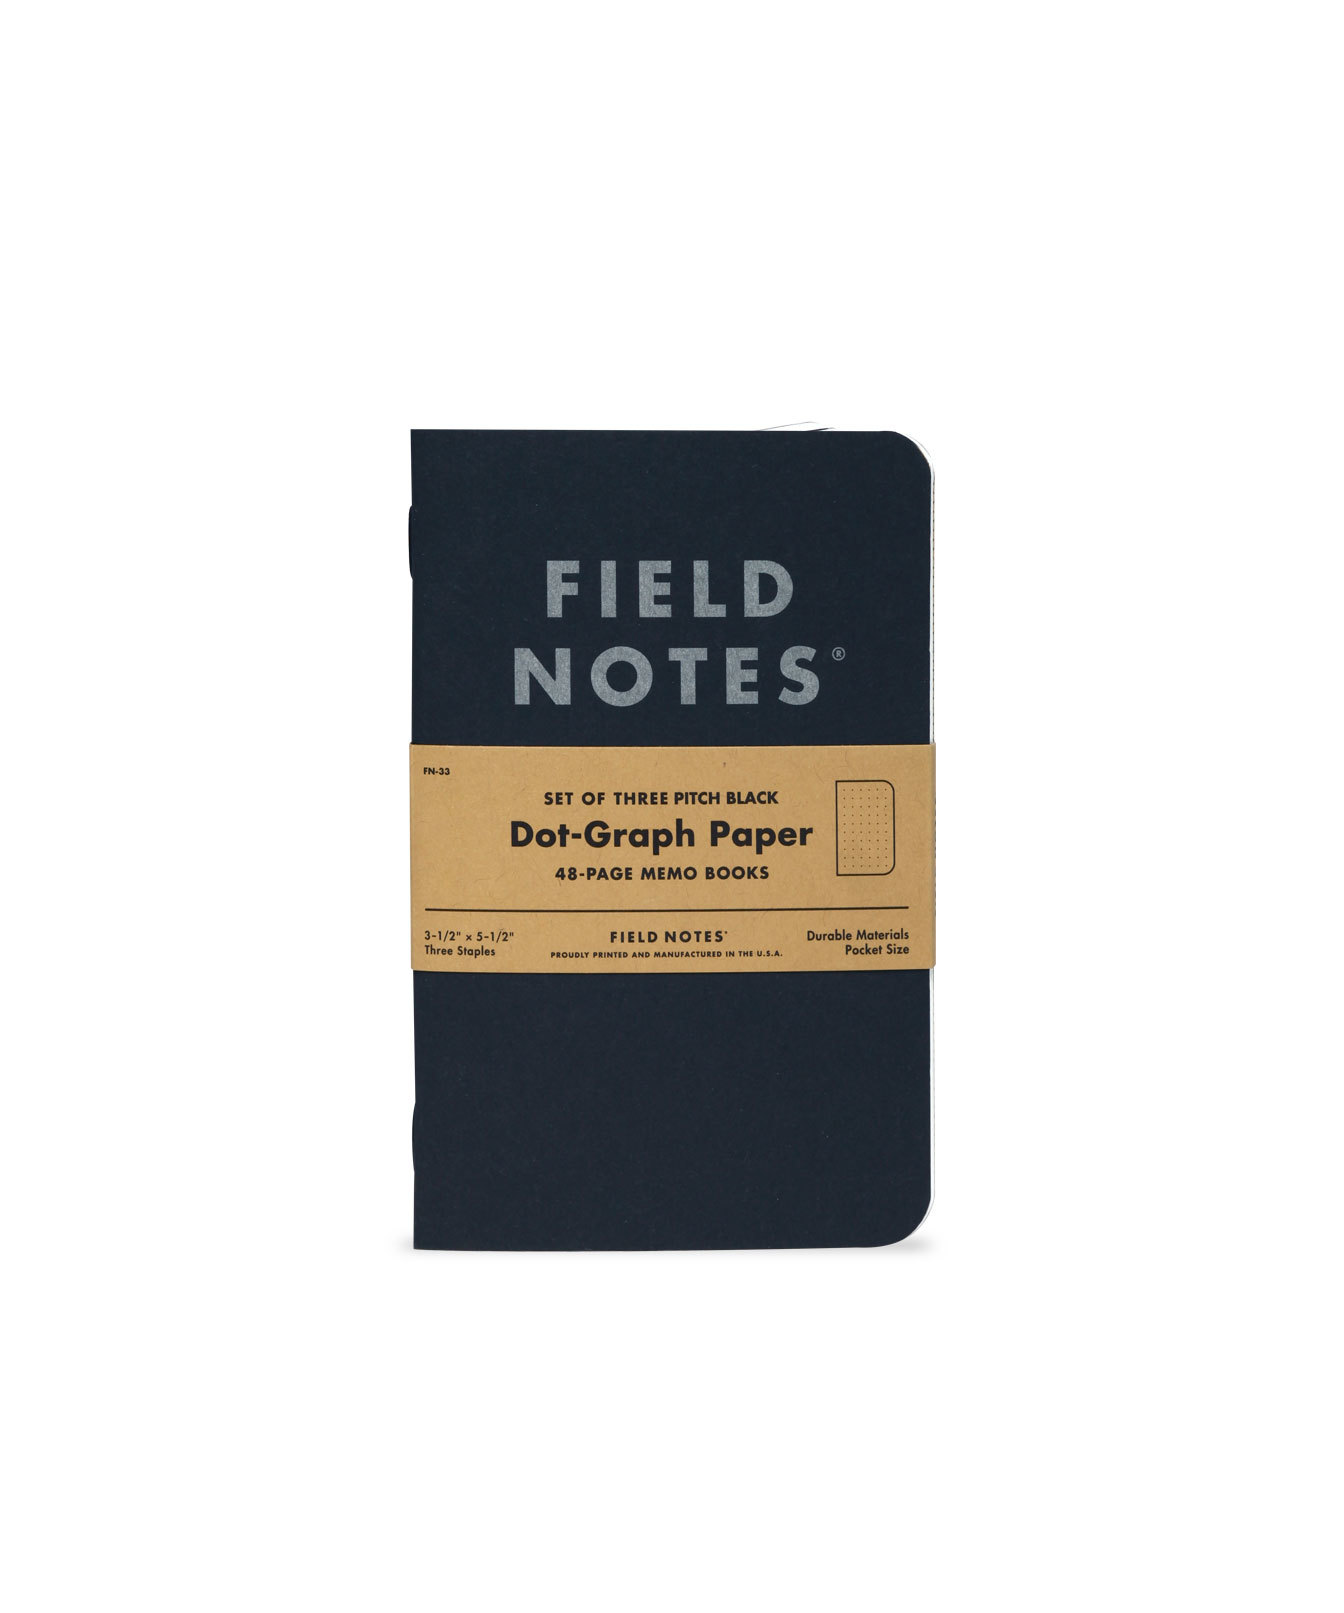 Field Notes, Pitch Black, schwarzer Einband, Notizhefte, 3er-Pack,